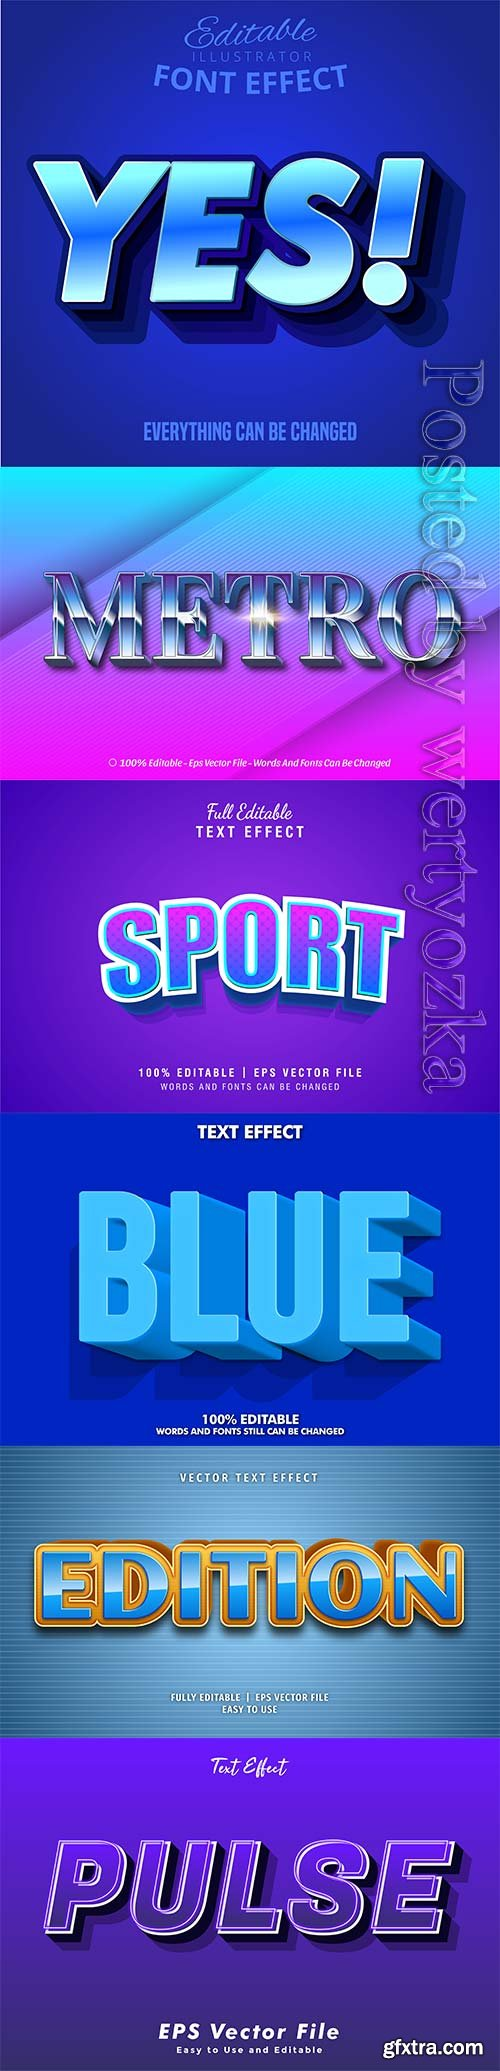 3d editable text style effect vector vol 309